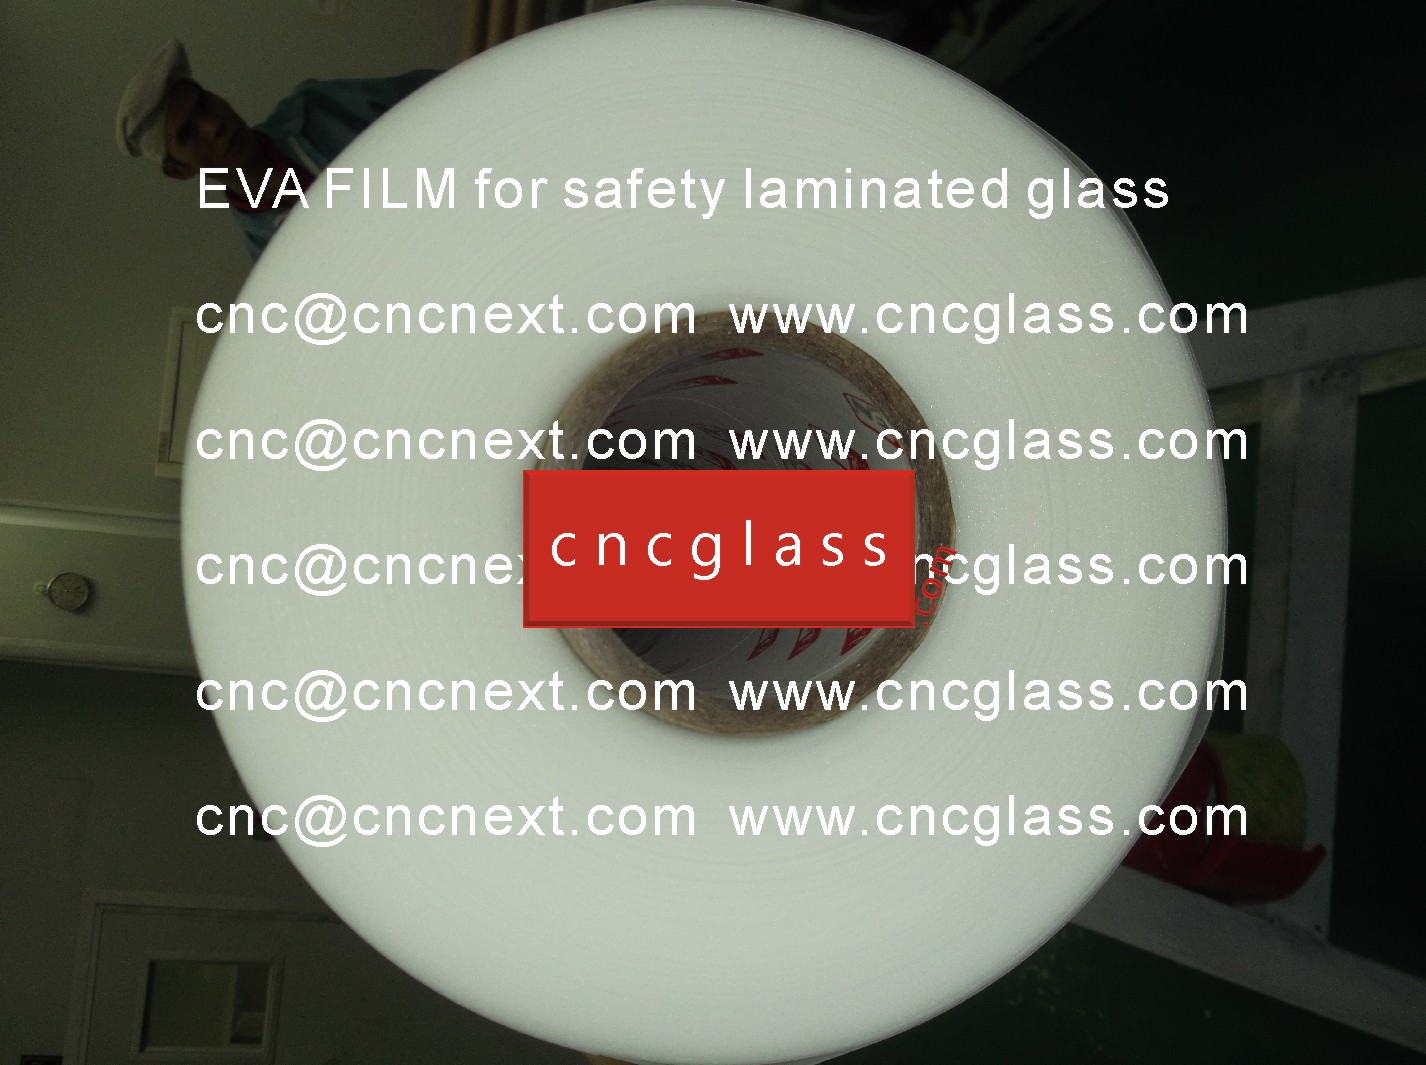 005 EVAFORCE EVA FILM FOR SAFETY LAMINATED GLASS